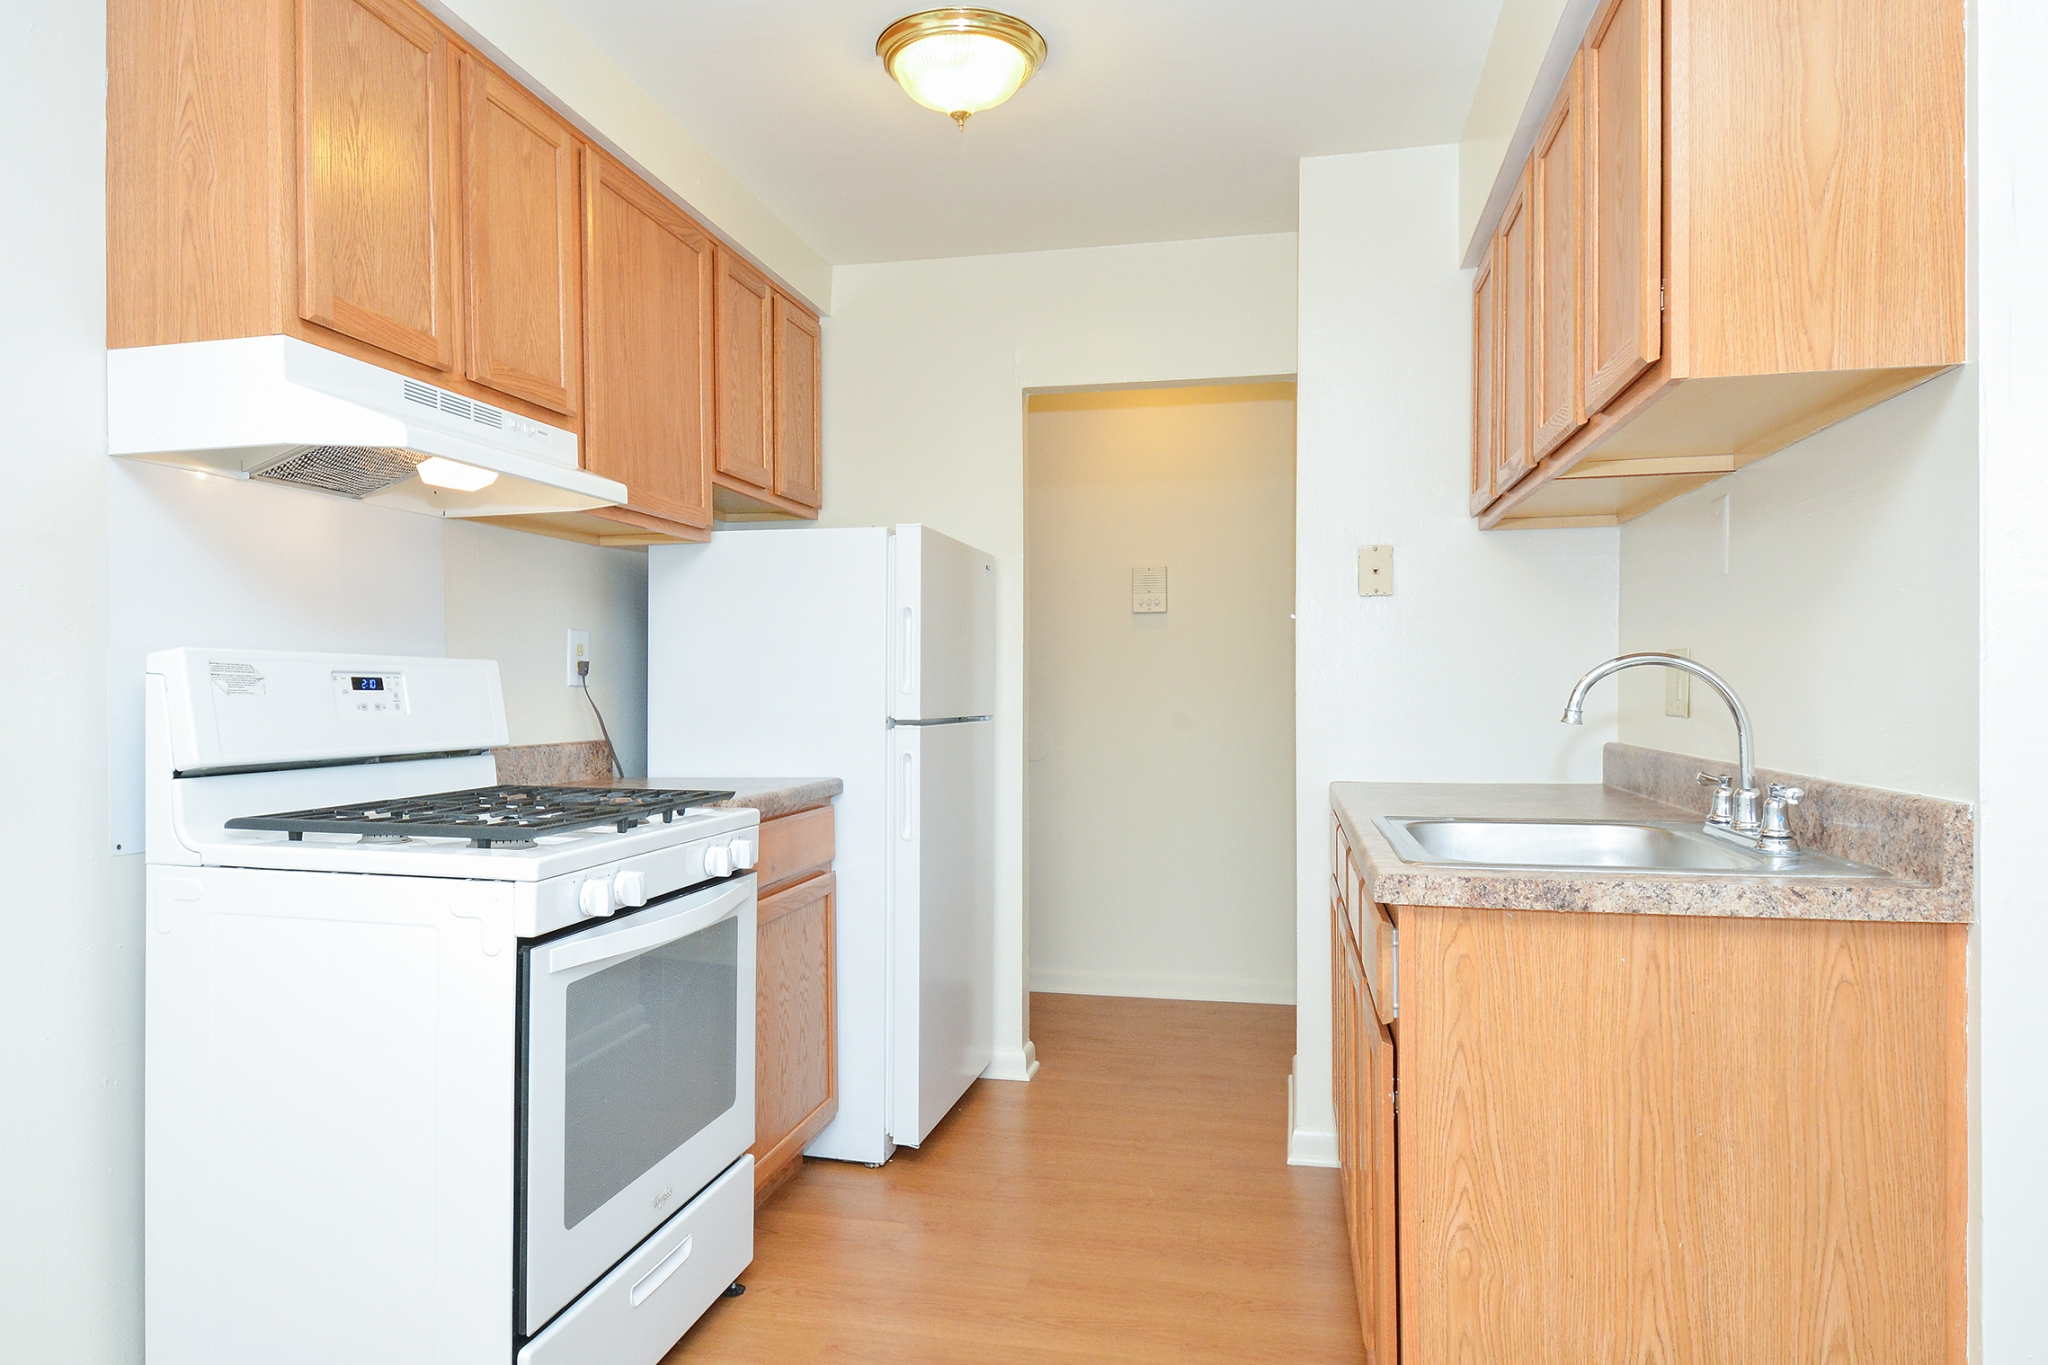 Newport Village Sample Kitchen with Brown Countertops and White Appliances | Levittown PA Apartments